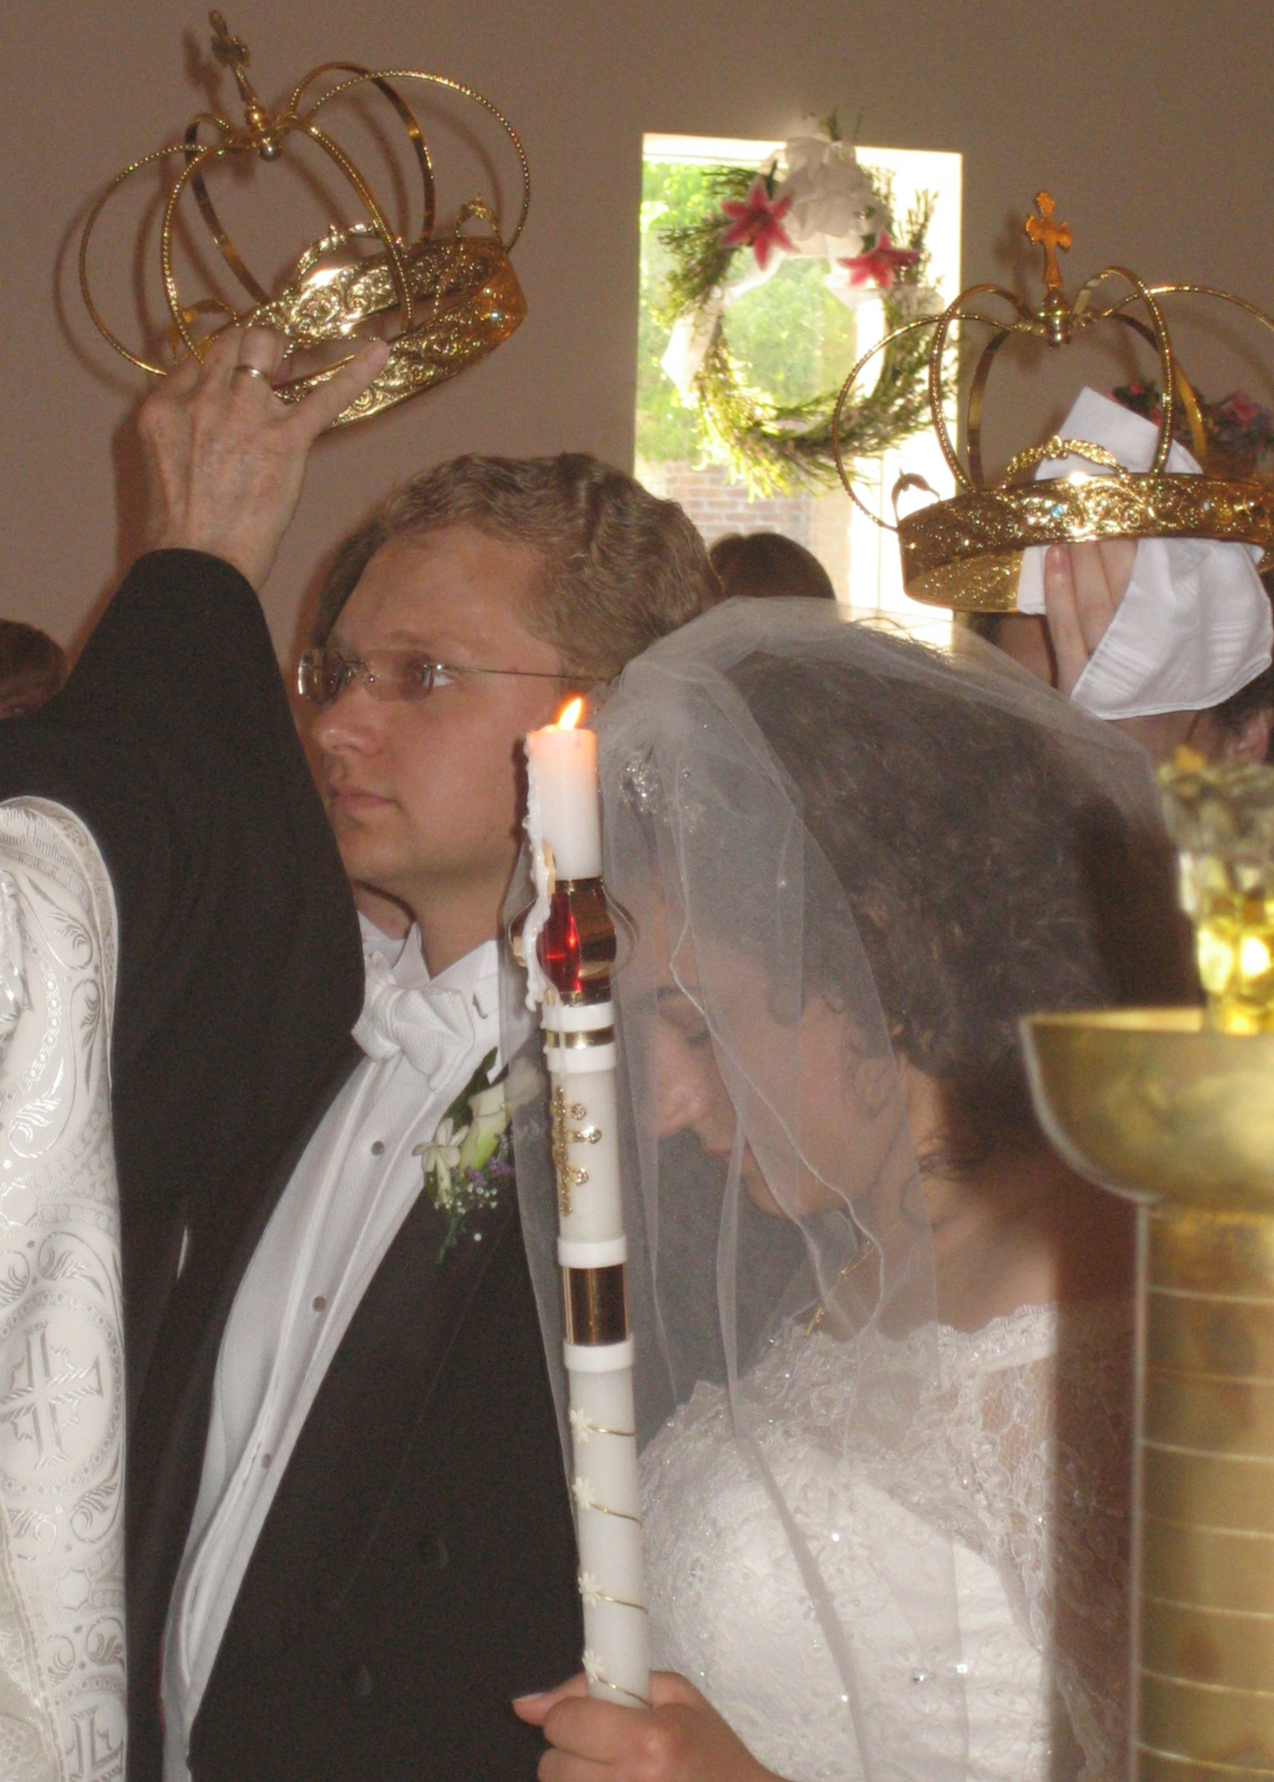 weddings from two different cultures theology religion essay Each culture has its own ways of making someone's special day extra special  weddings are surrounded by rituals and  weddings cannot be held on the sabbath or many other religious holidays .